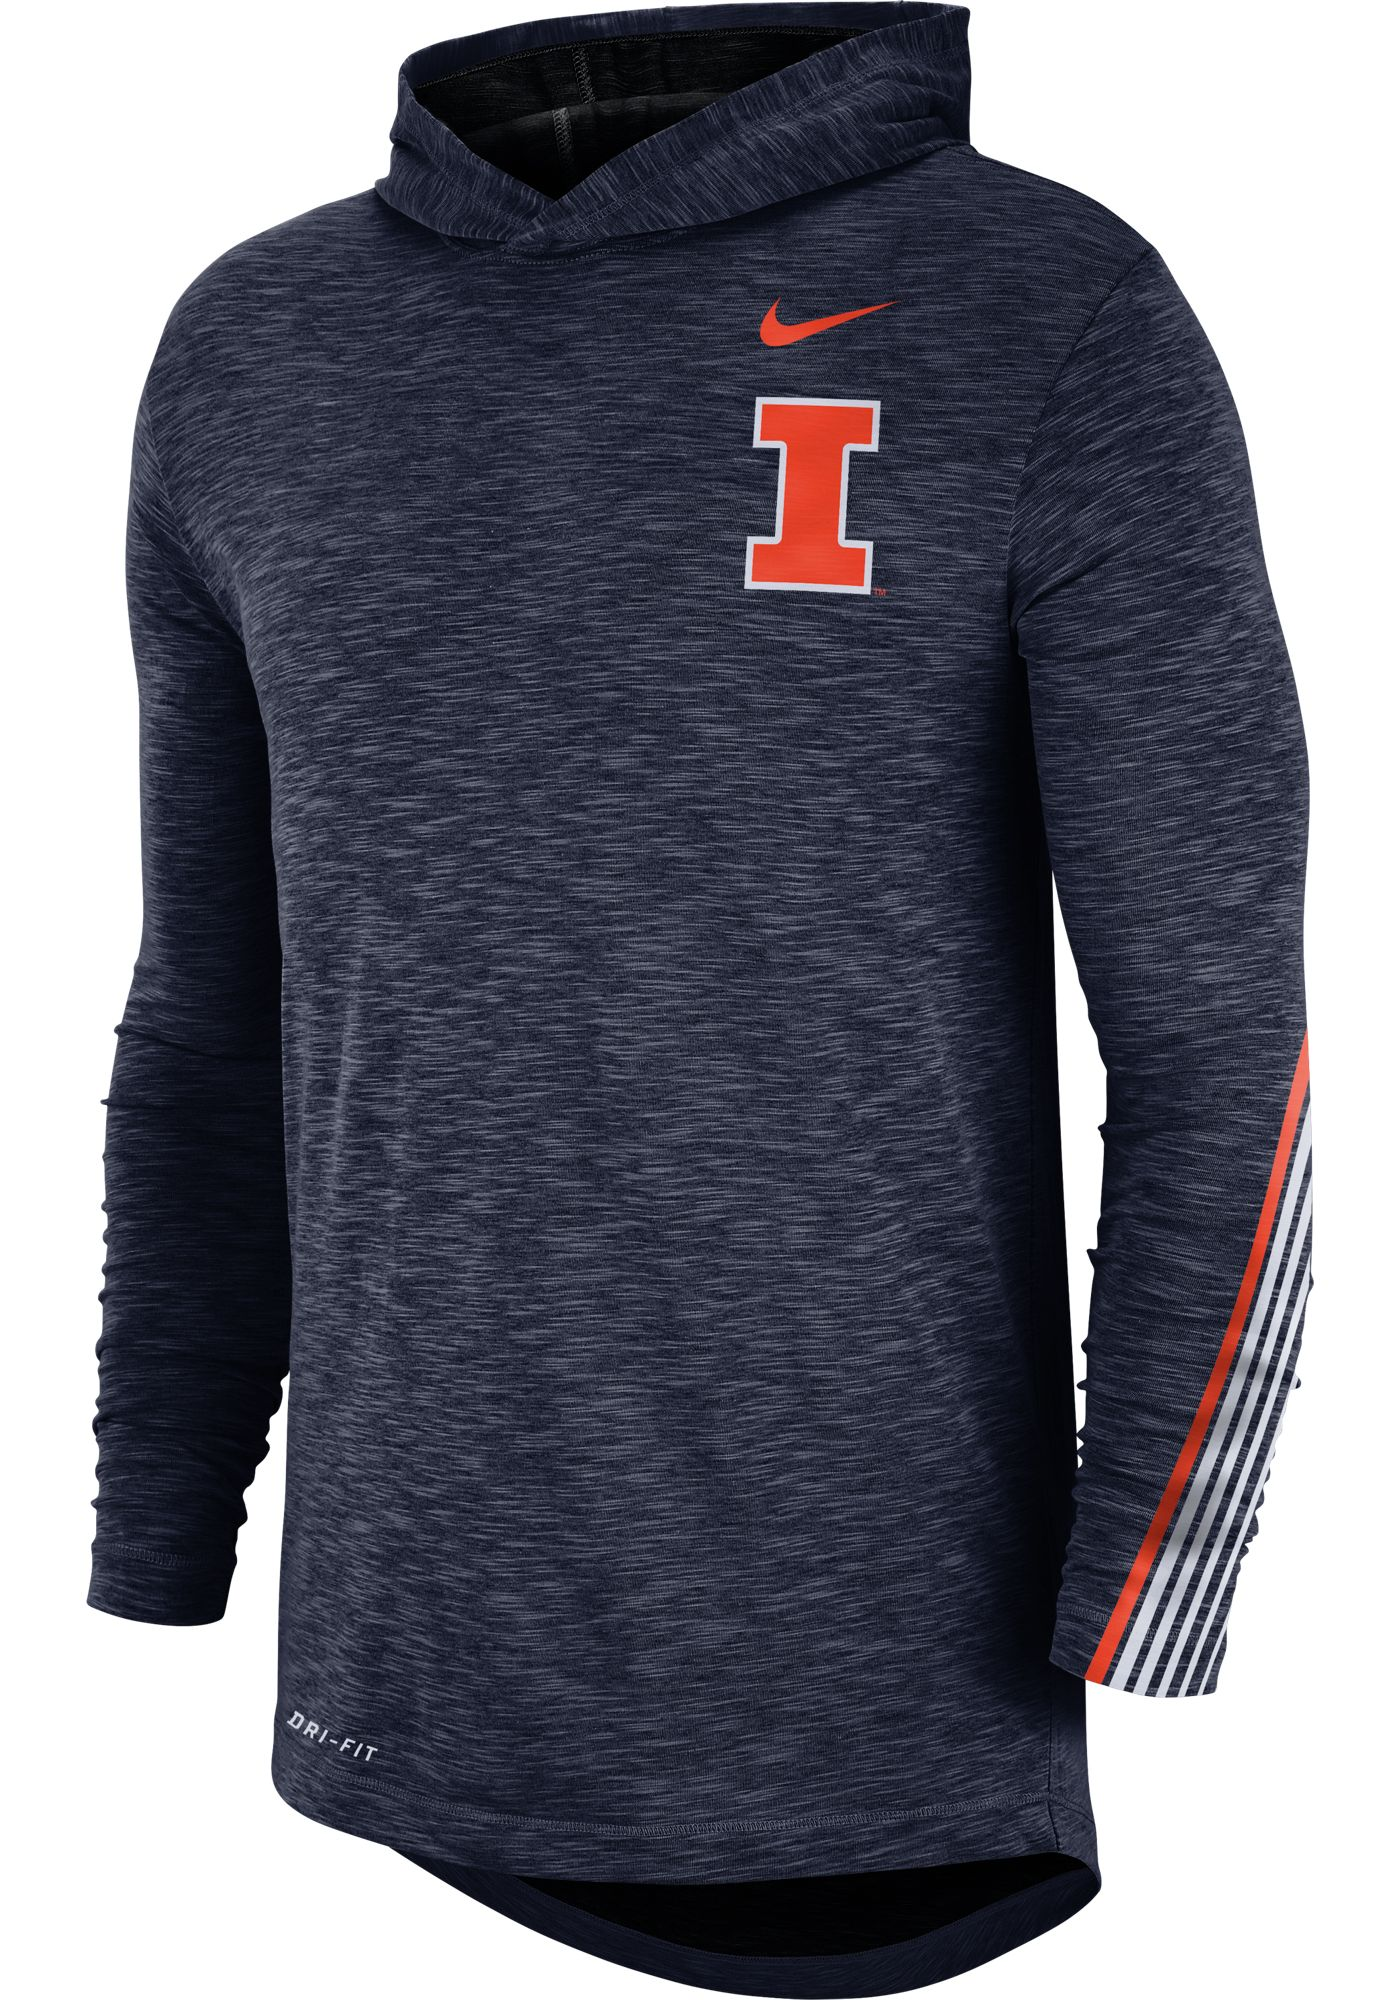 Nike Men's Illinois Fighting Illini Blue Cotton Long Sleeve Hoodie T-Shirt